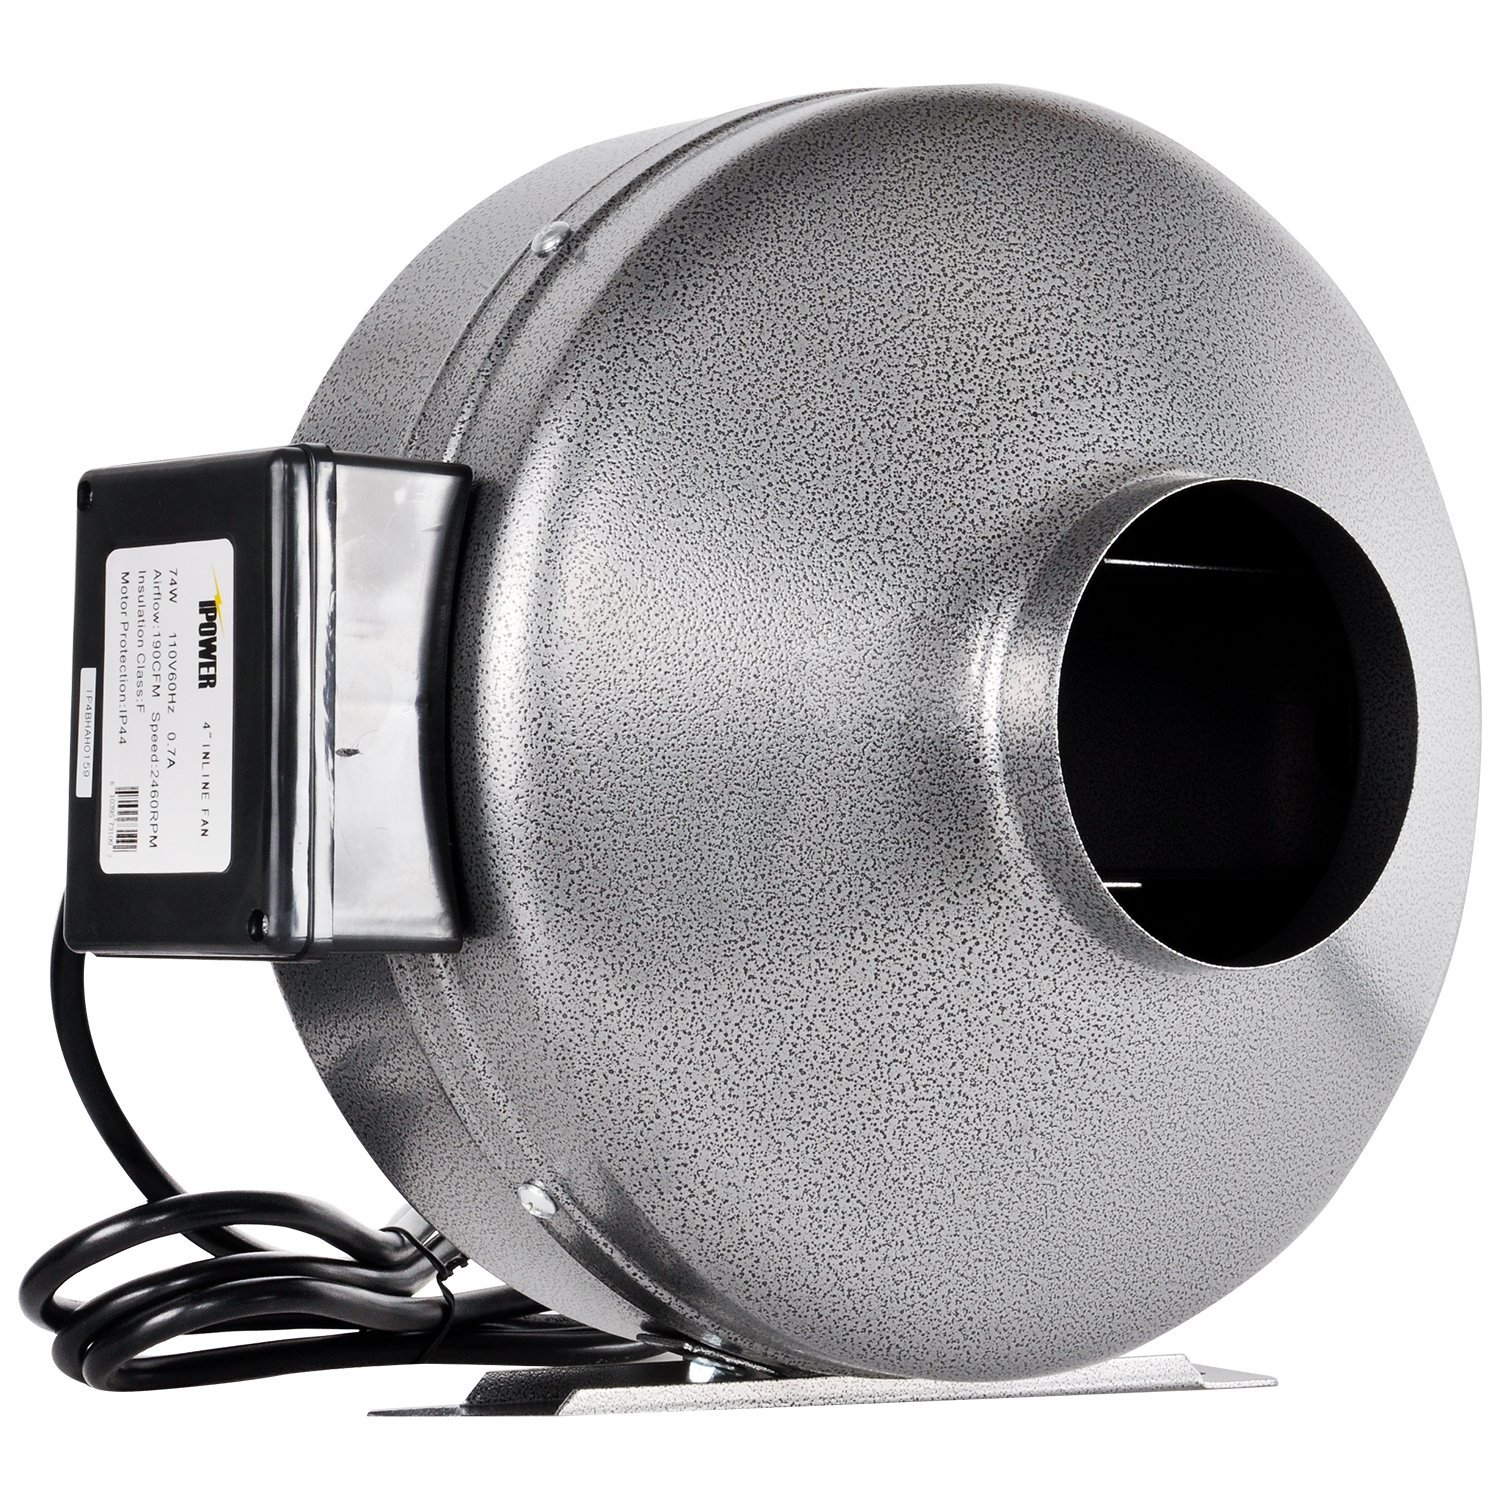 ipower 8 inch 750 cfm inline duct ventilation fan hvac exhaust blower for grow tent grounded power cord 8 grey